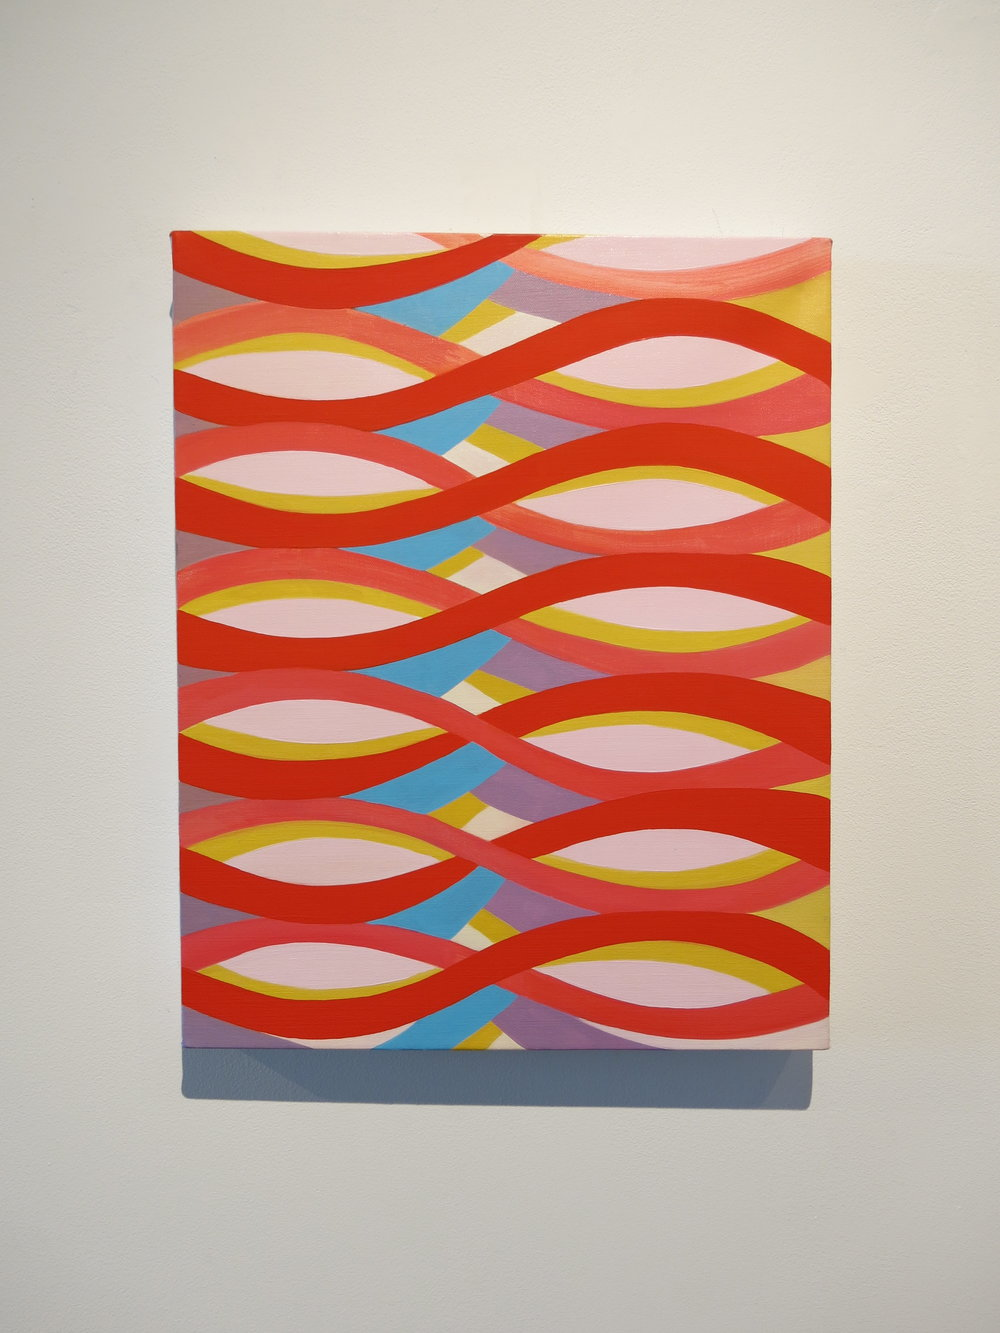 Jenifer Kobylarz,  Tangle , 2013, oil on linen, 20h x 16w in.